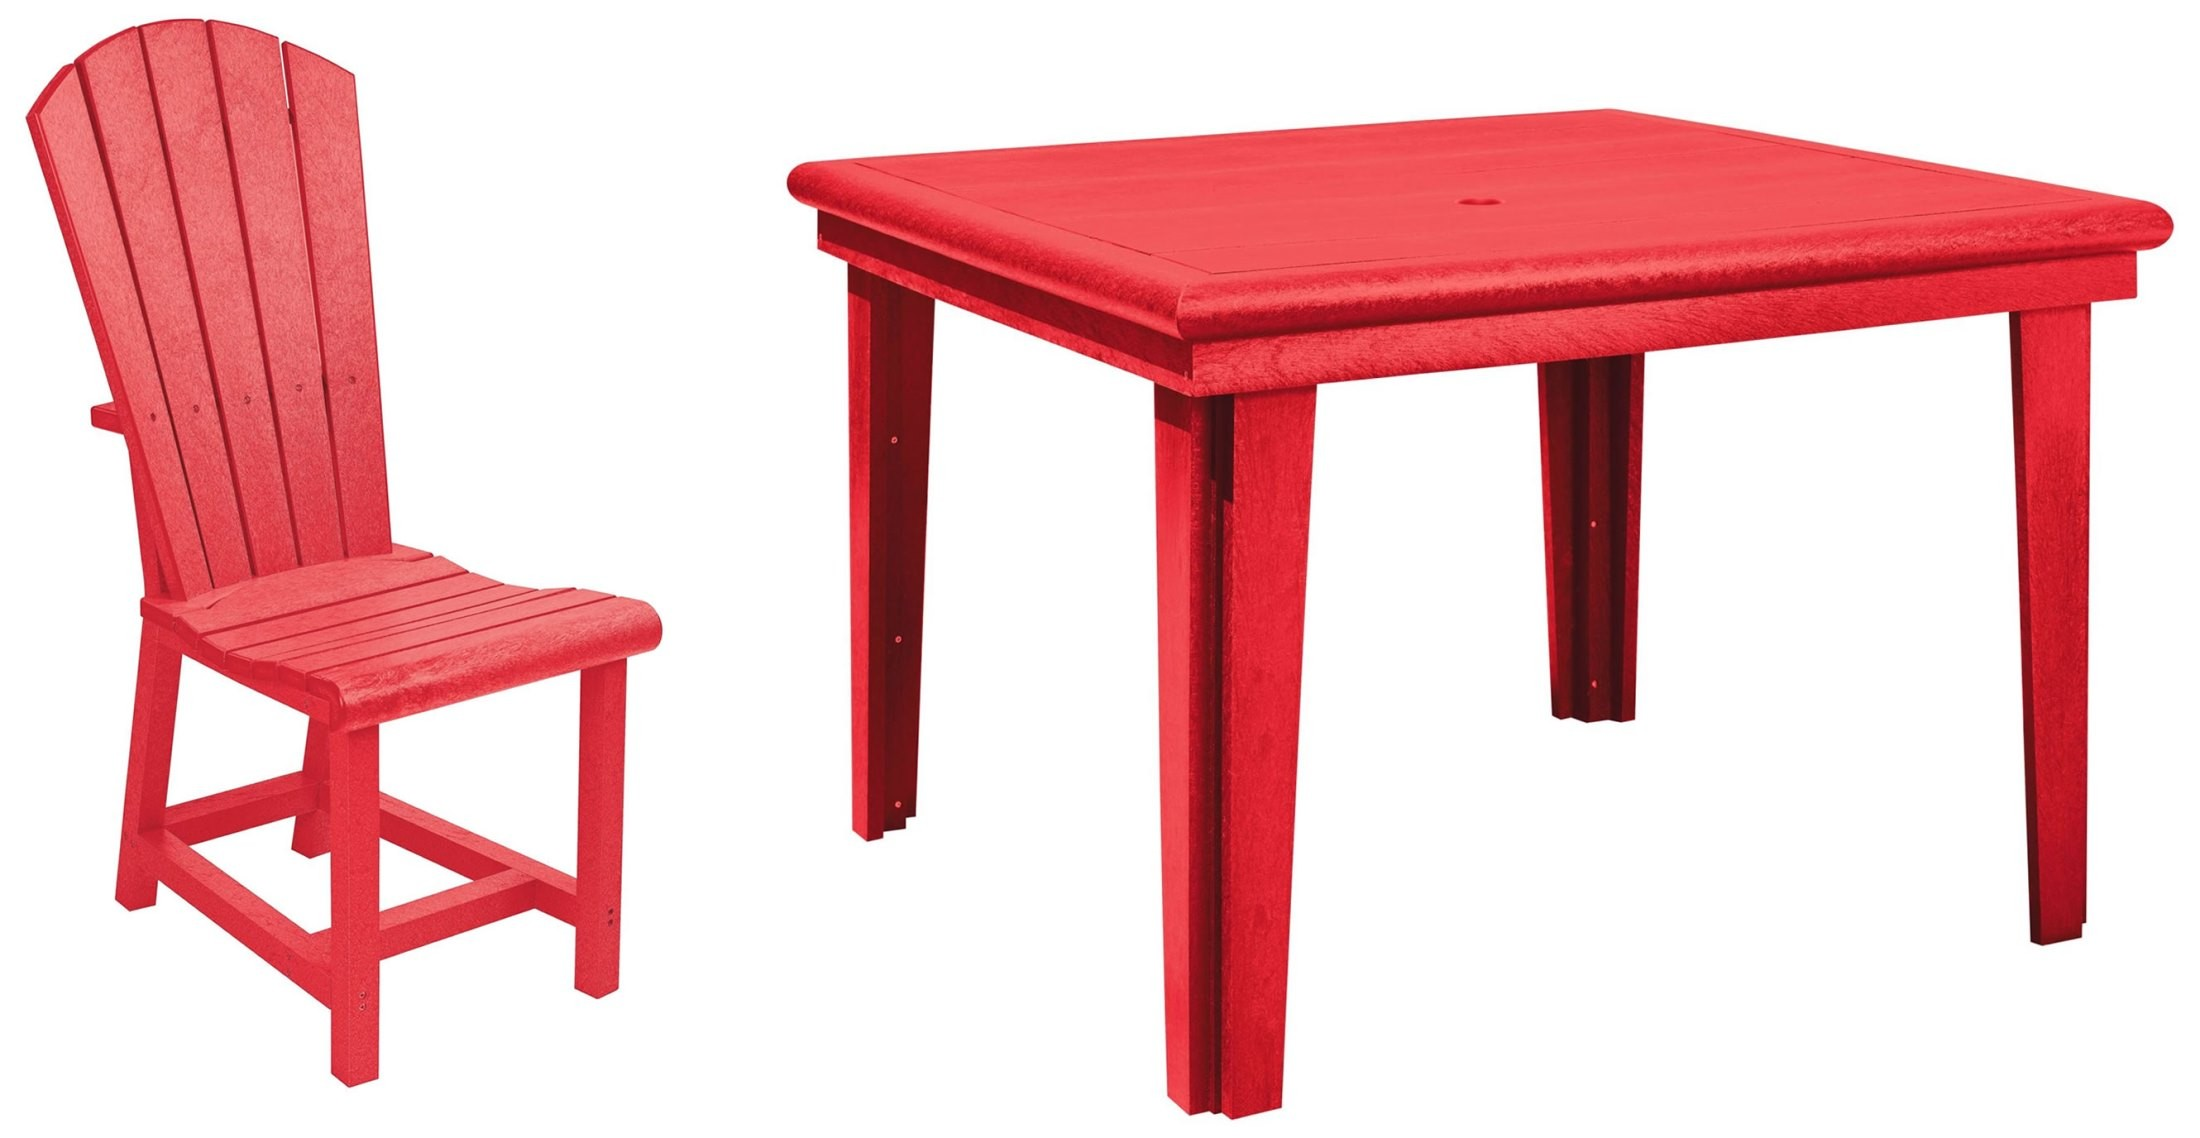 generations red 46 square dining room set from cr plastic t10 01